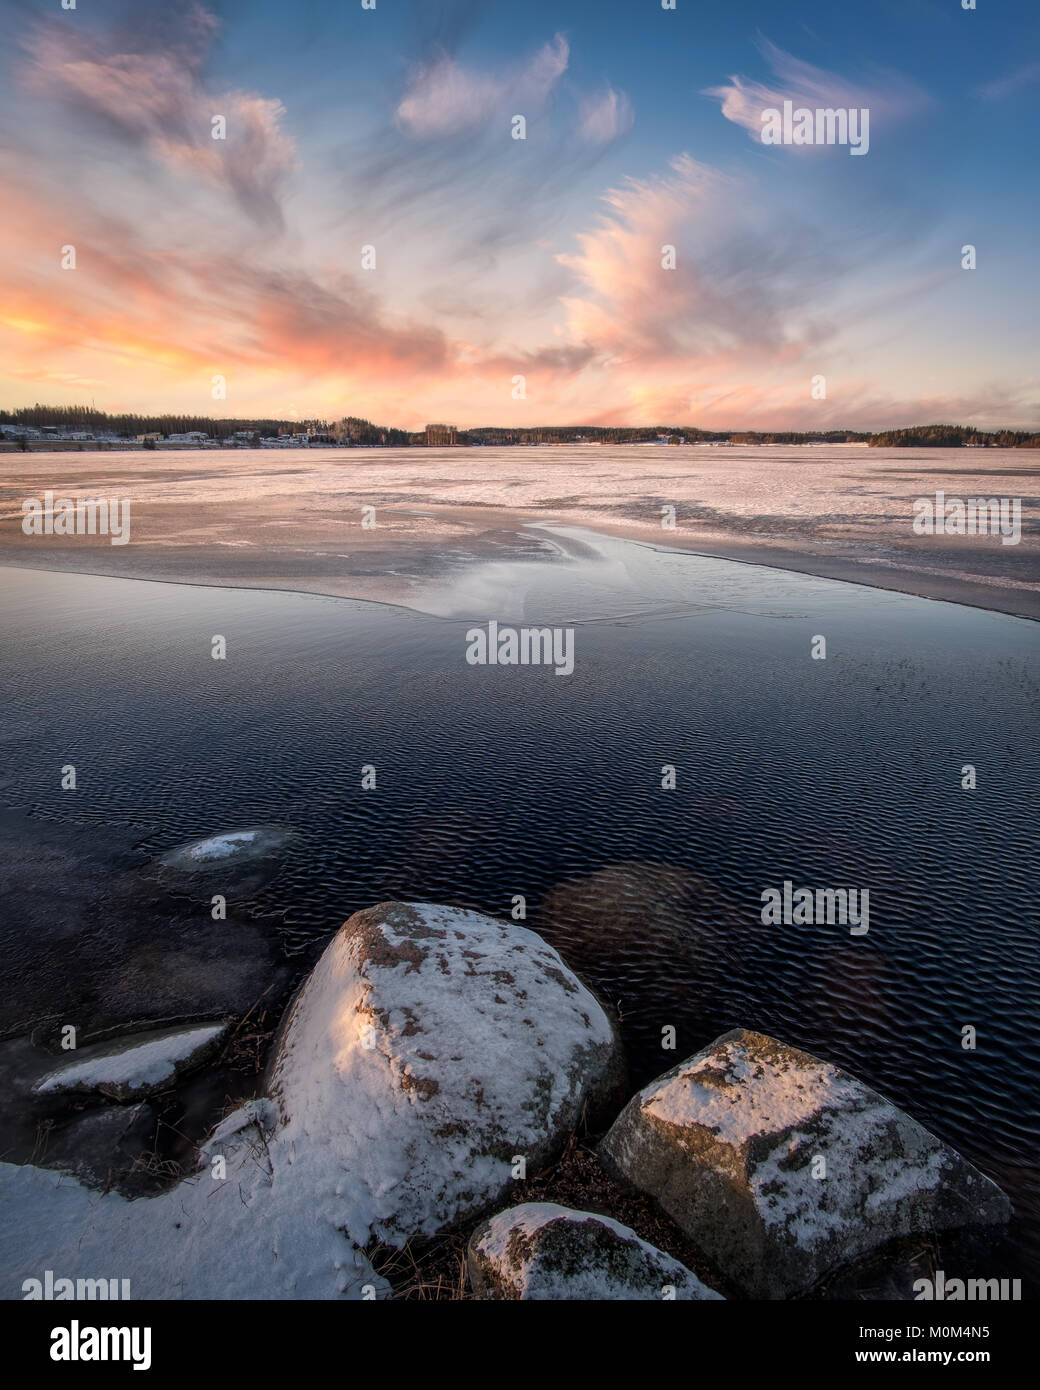 Scenic landscape with sunset and freezing lake at winter evening in FInland - Stock Image